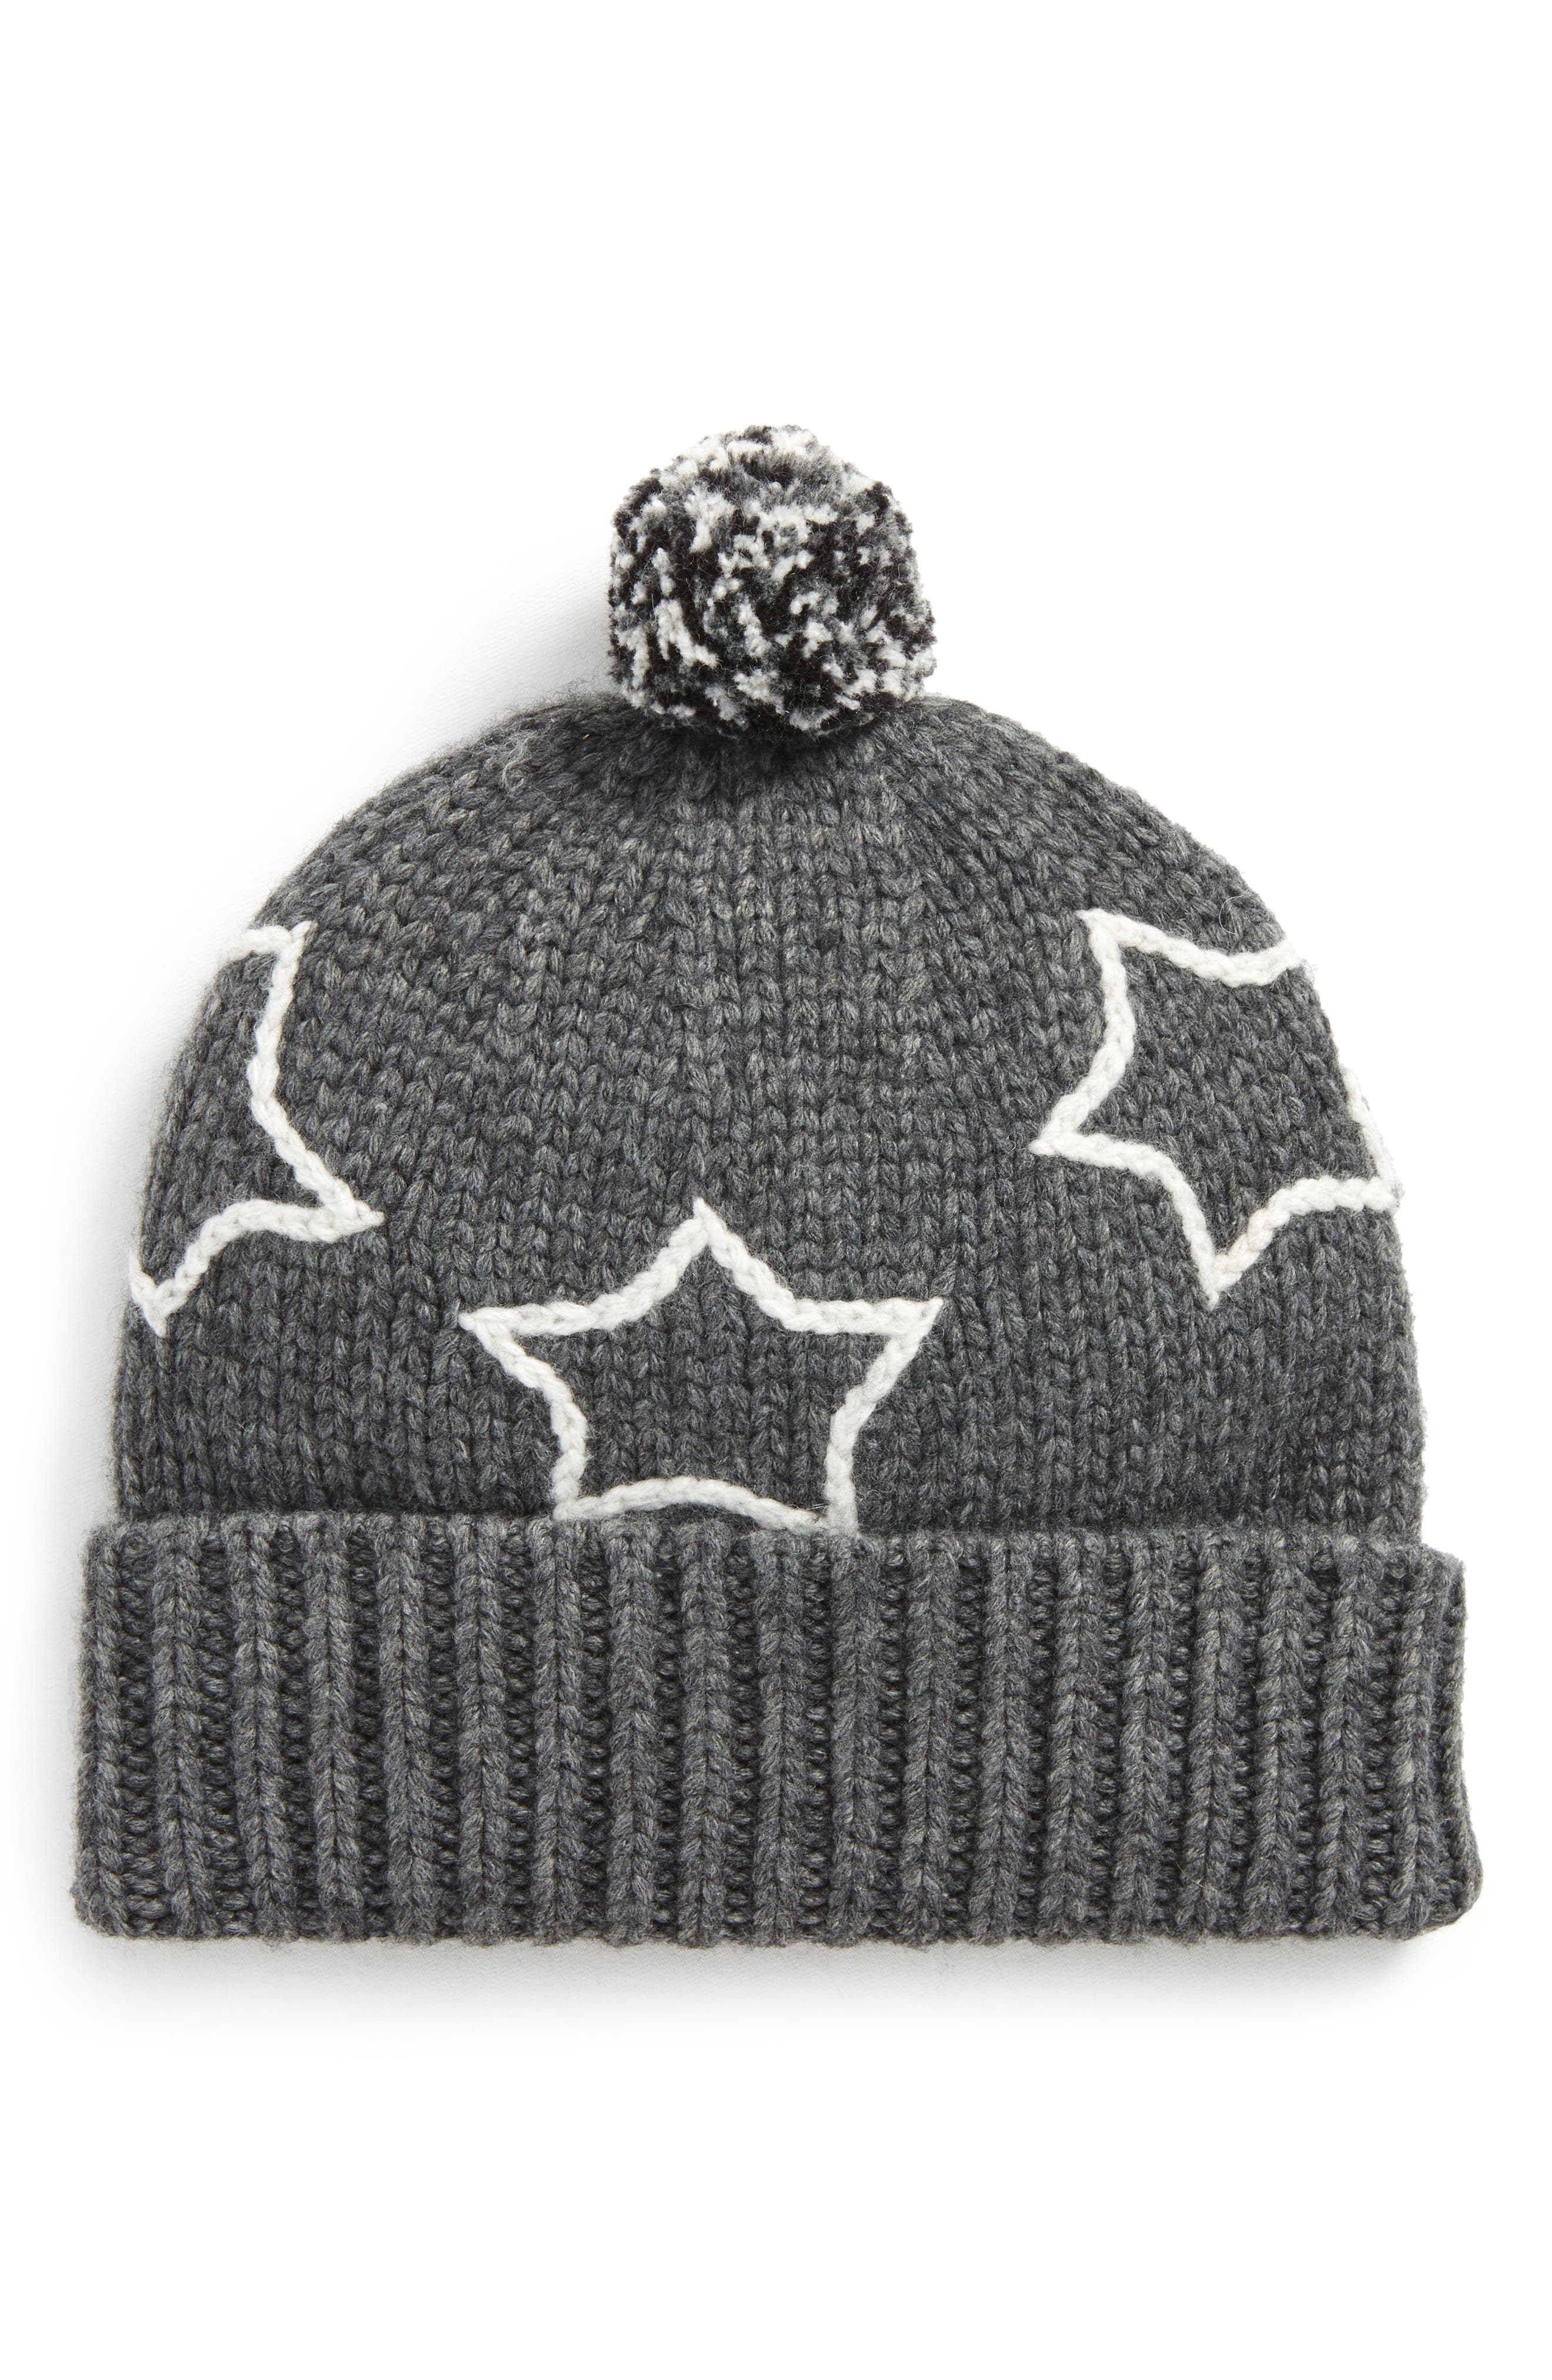 Starry Pompom Beanie,                             Main thumbnail 1, color,                             020